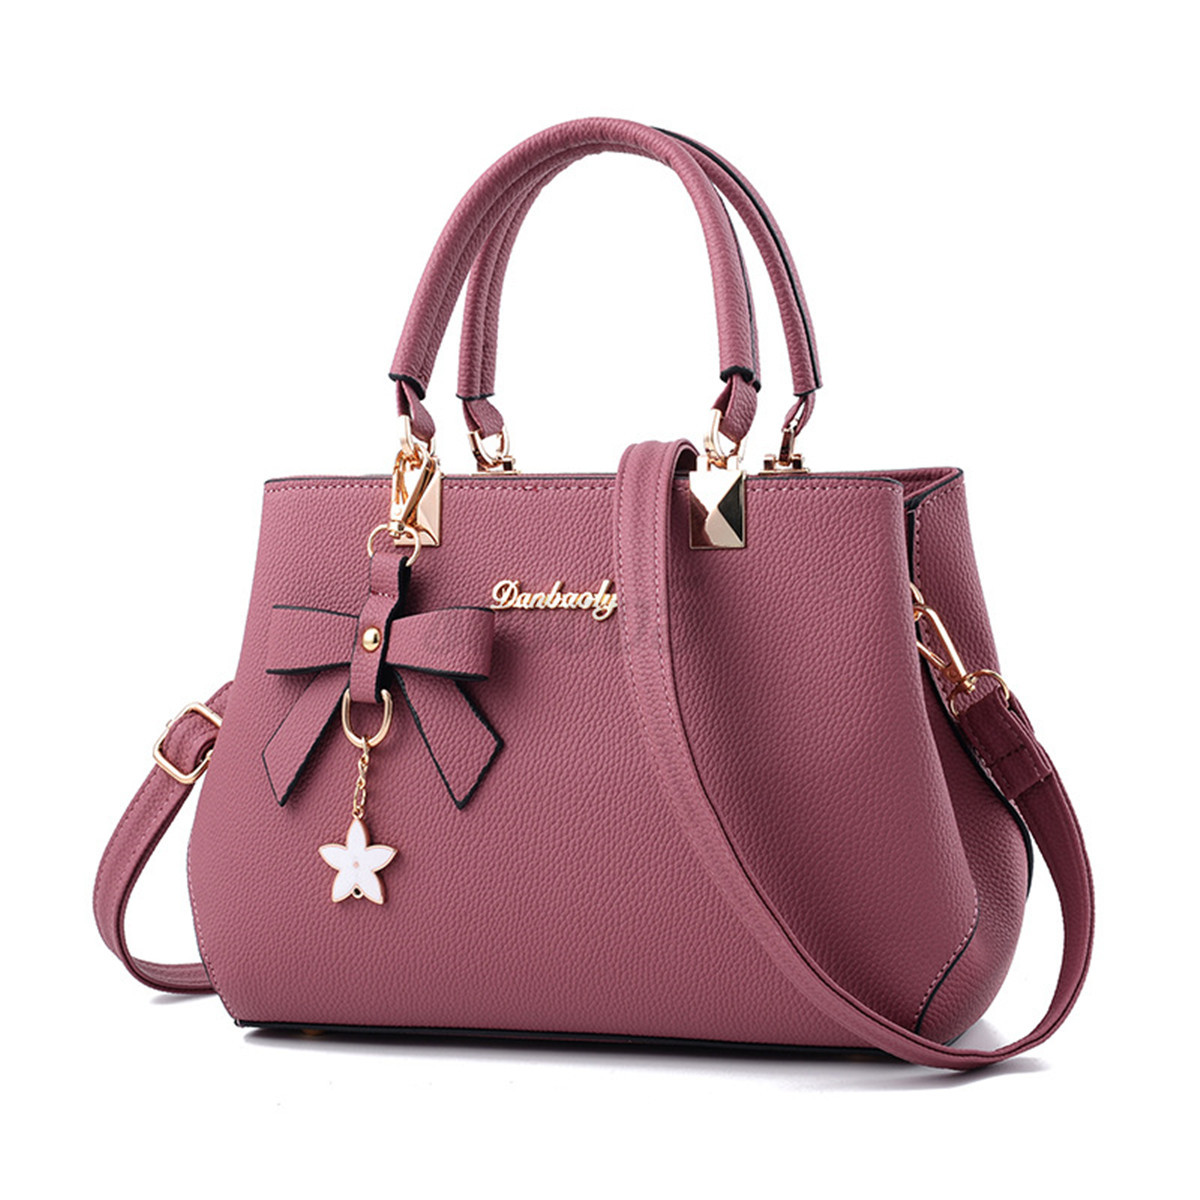 Find coach new york from a vast selection of Women's Handbags and Bags. Get great deals on eBay!